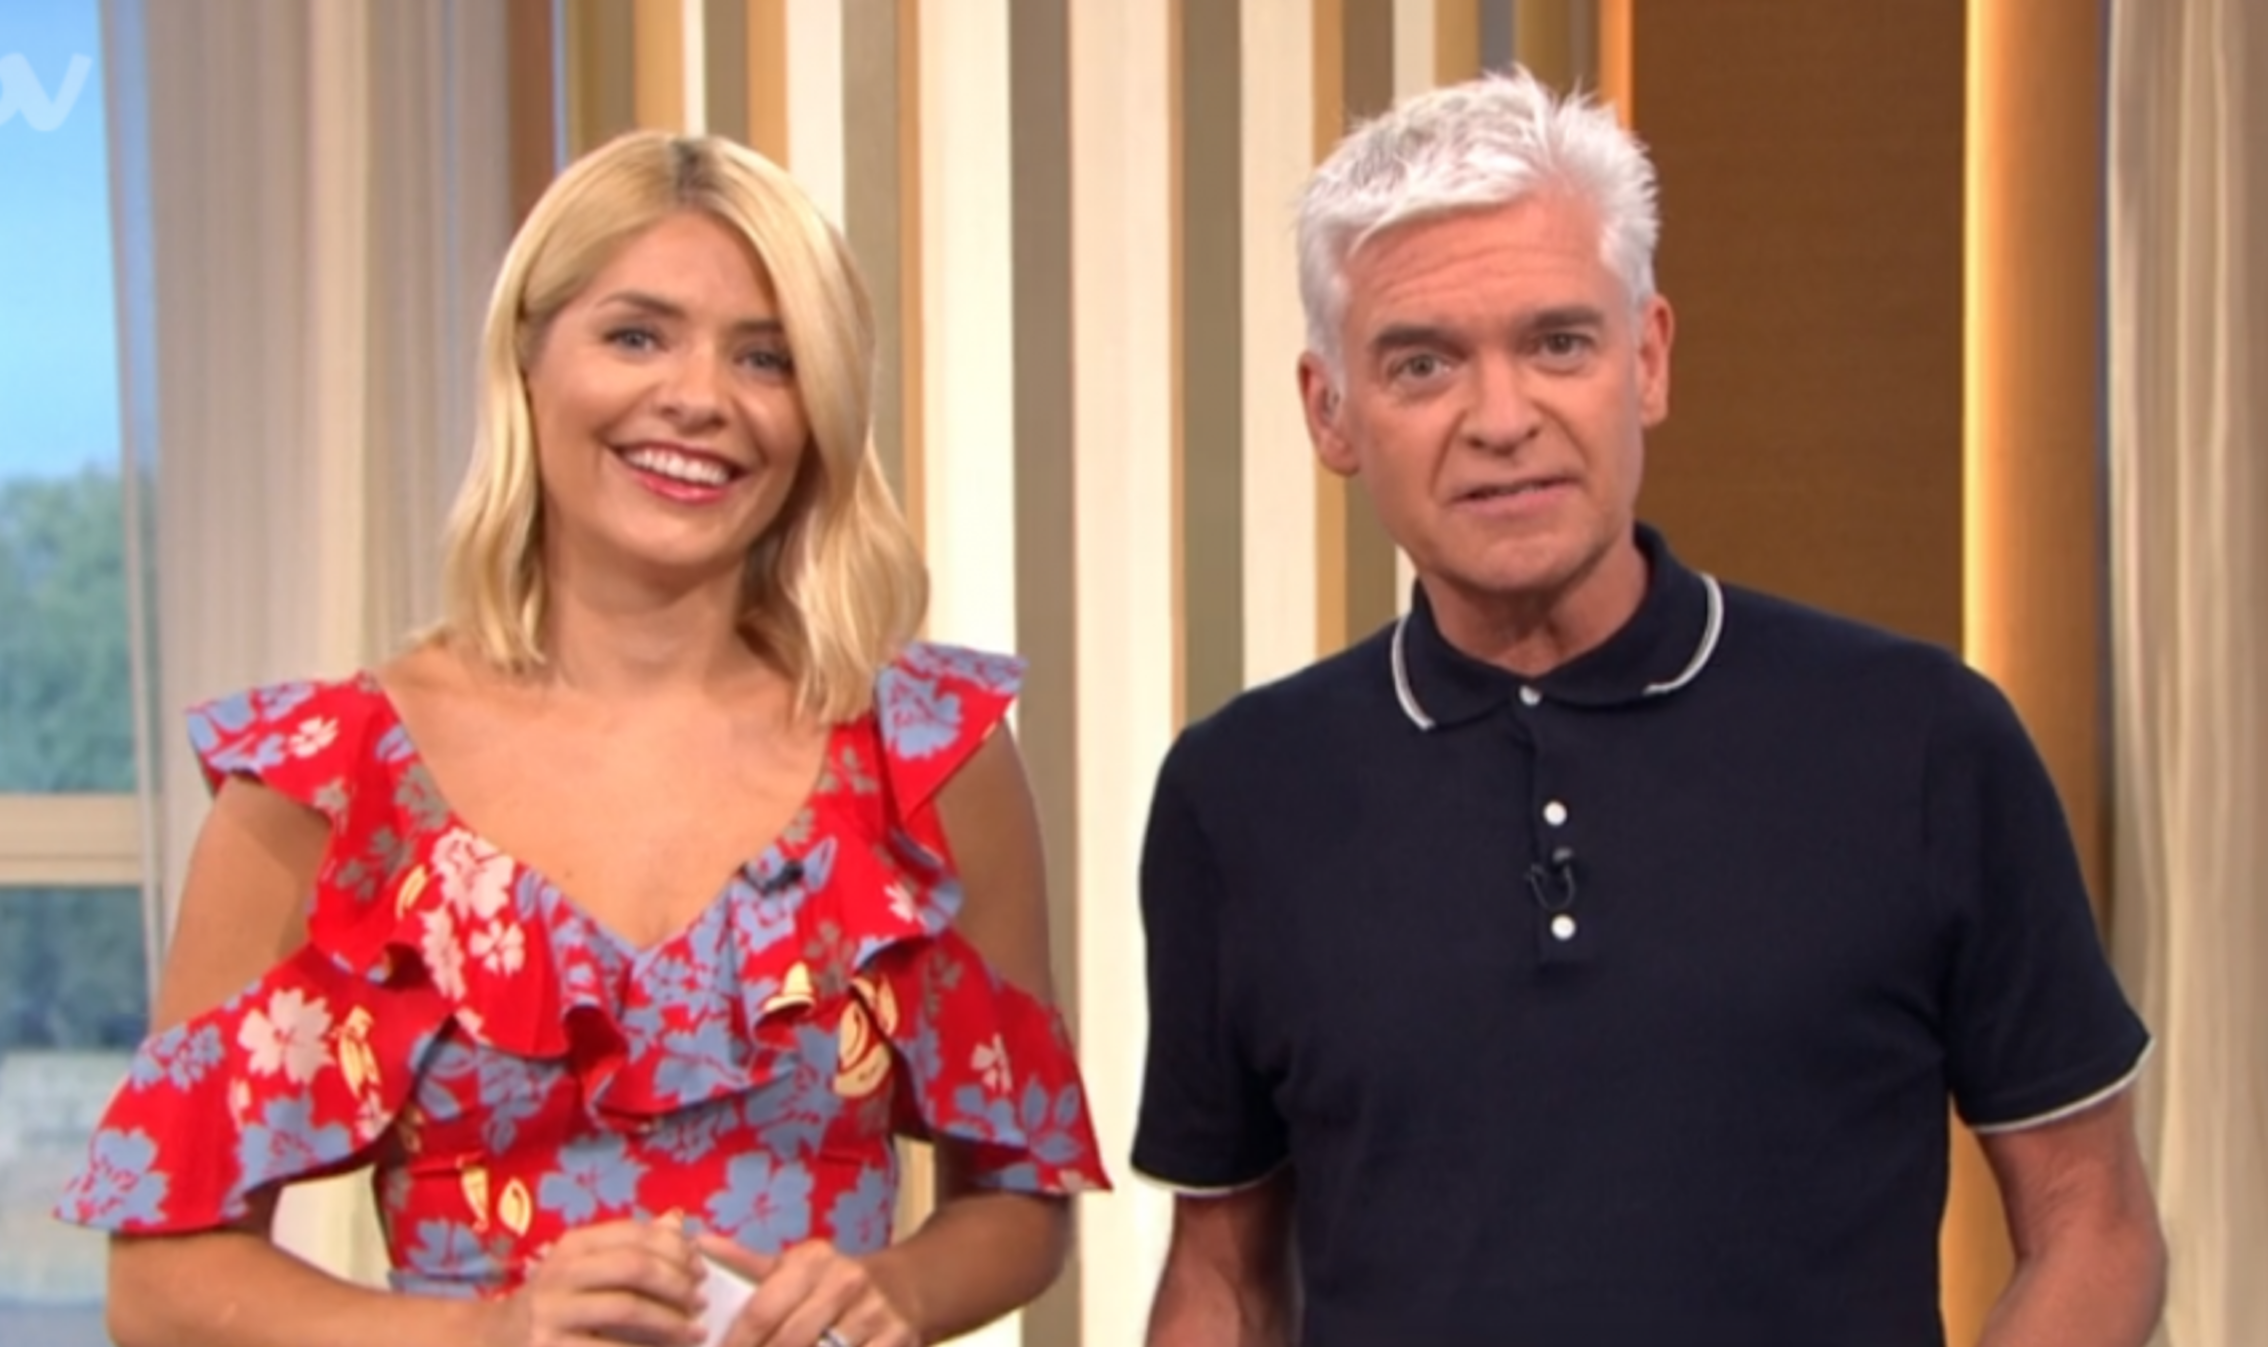 Holly Willoughby and Phillip Schofield reunite with families for Friday night party